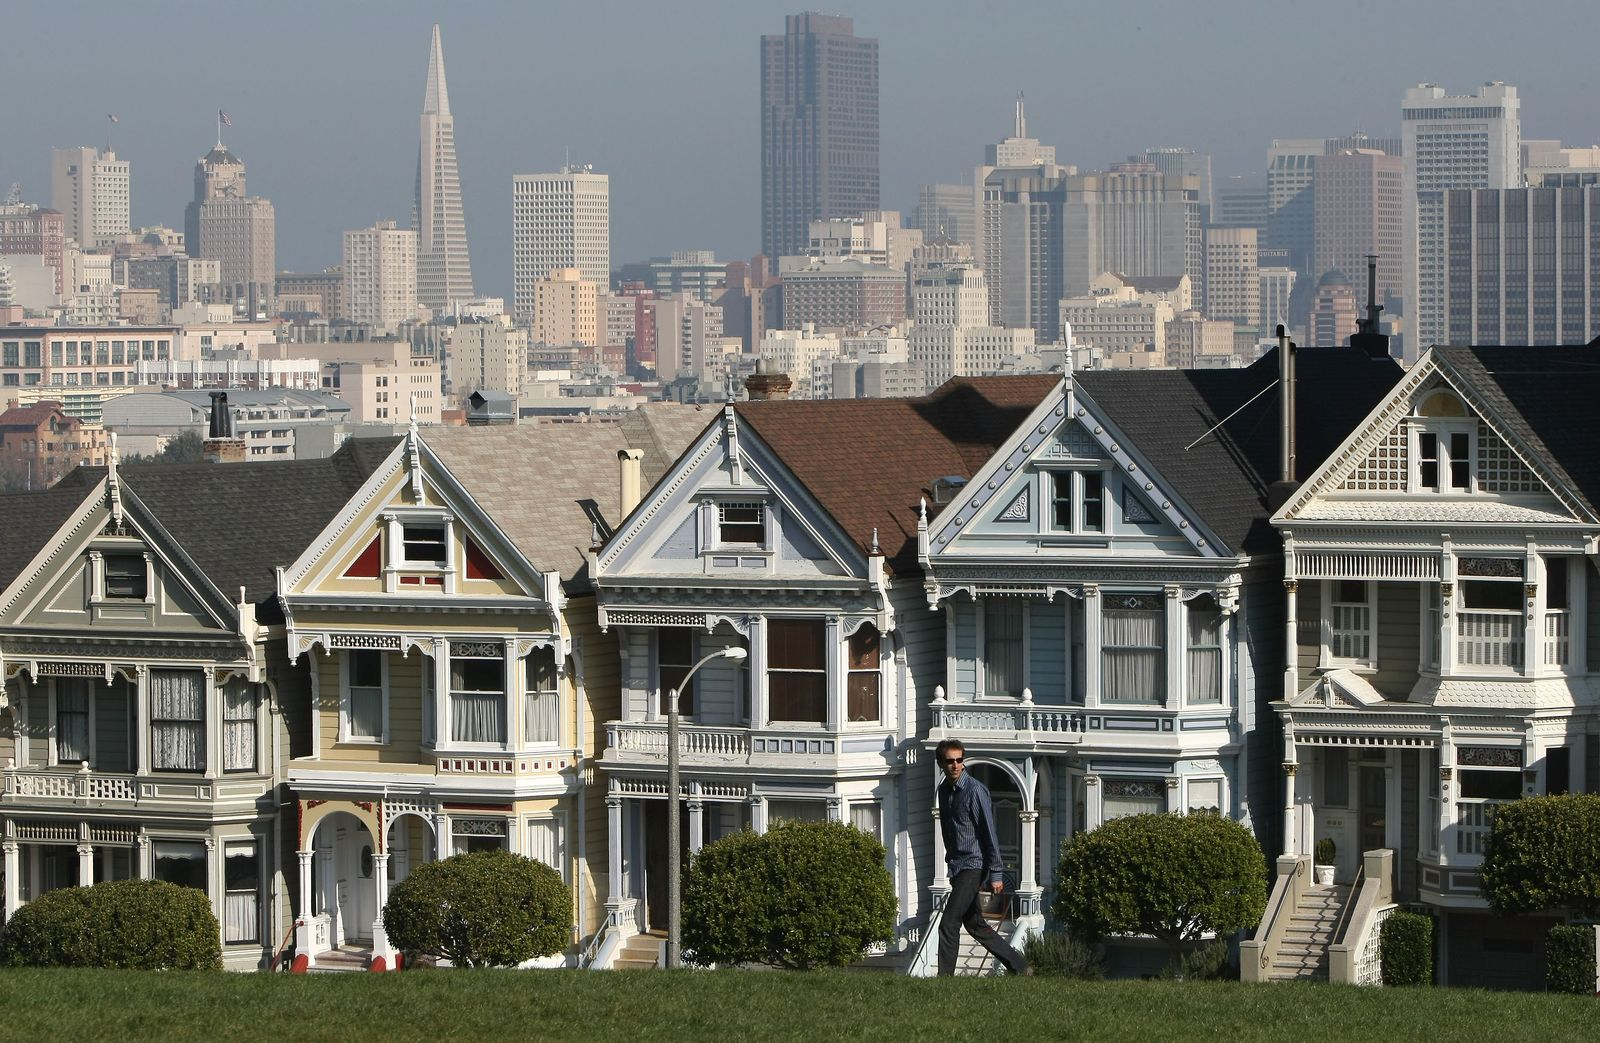 New Report Finds That S.F. Infrastructure Unprepared For Major Earthquake